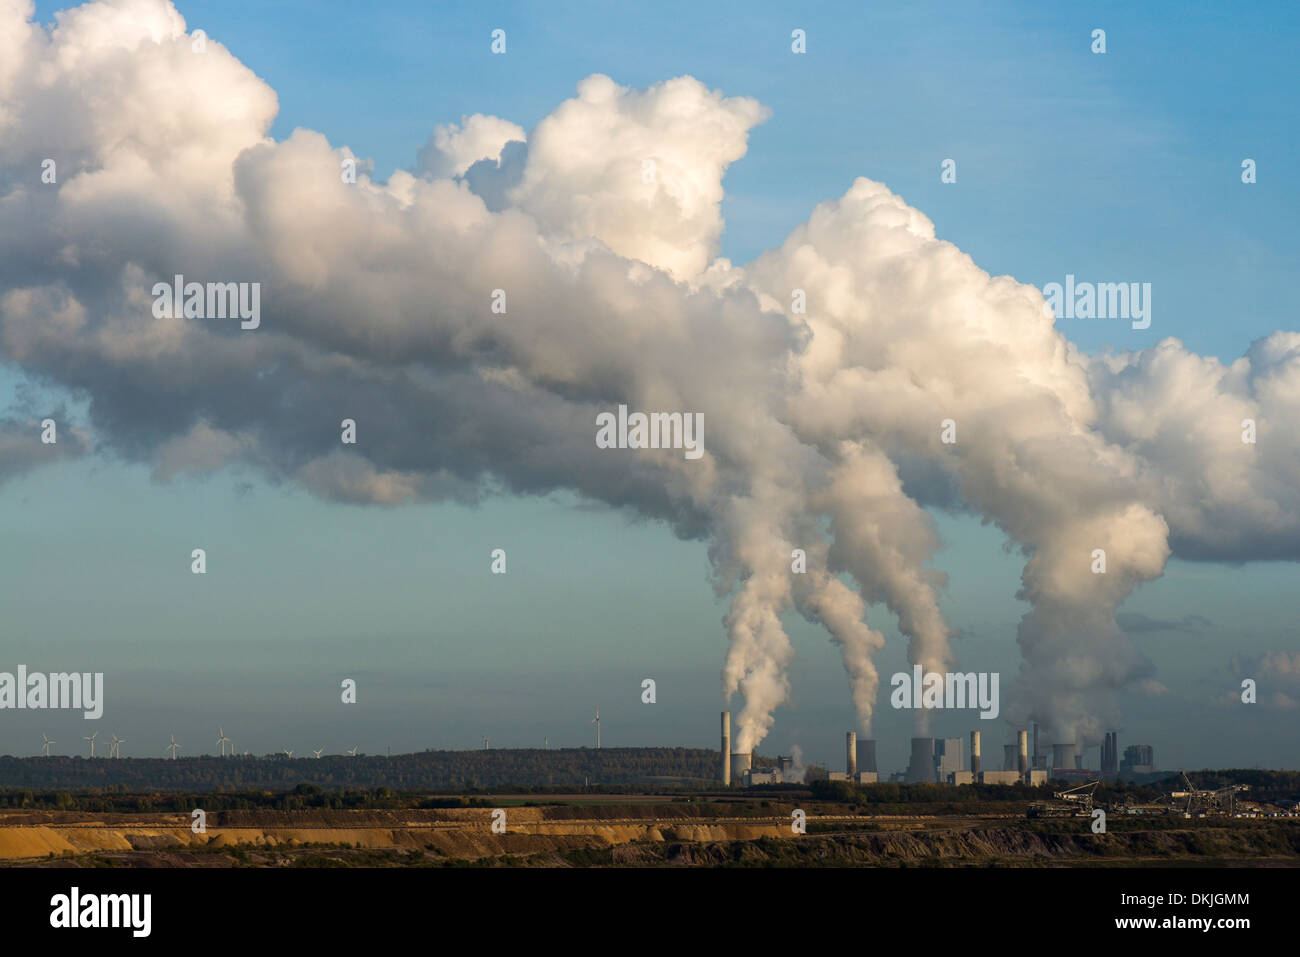 Brown coal opencast mining Garzweiler near Juechen coal power stations Frimmersdorf, North Rhine-Westphalia, Germany, Europe - Stock Image